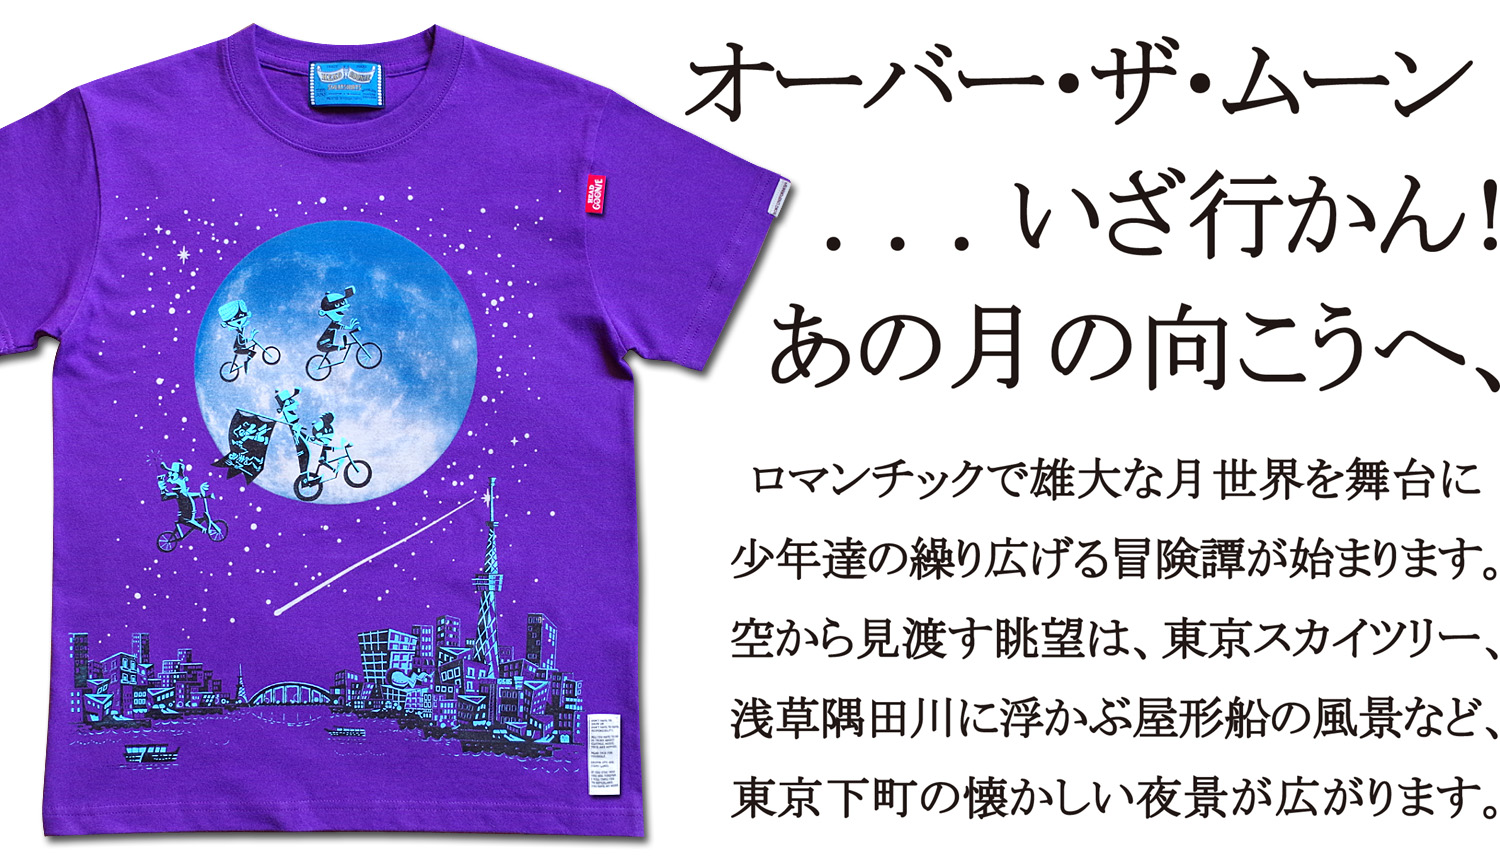 OVER THE MOON! Tシャツ